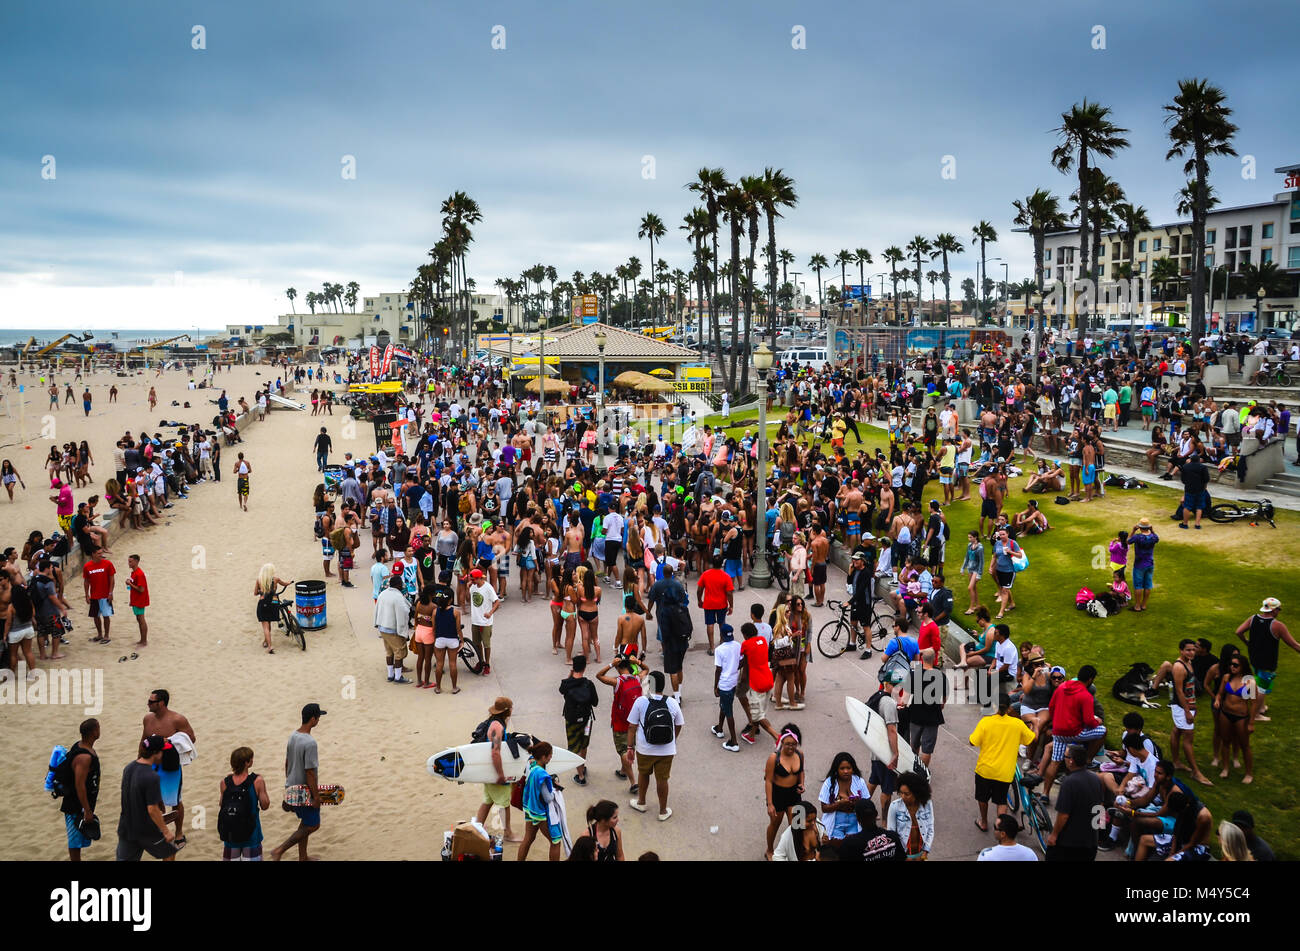 Huntington Beach Crowds in Southern California. - Stock Image